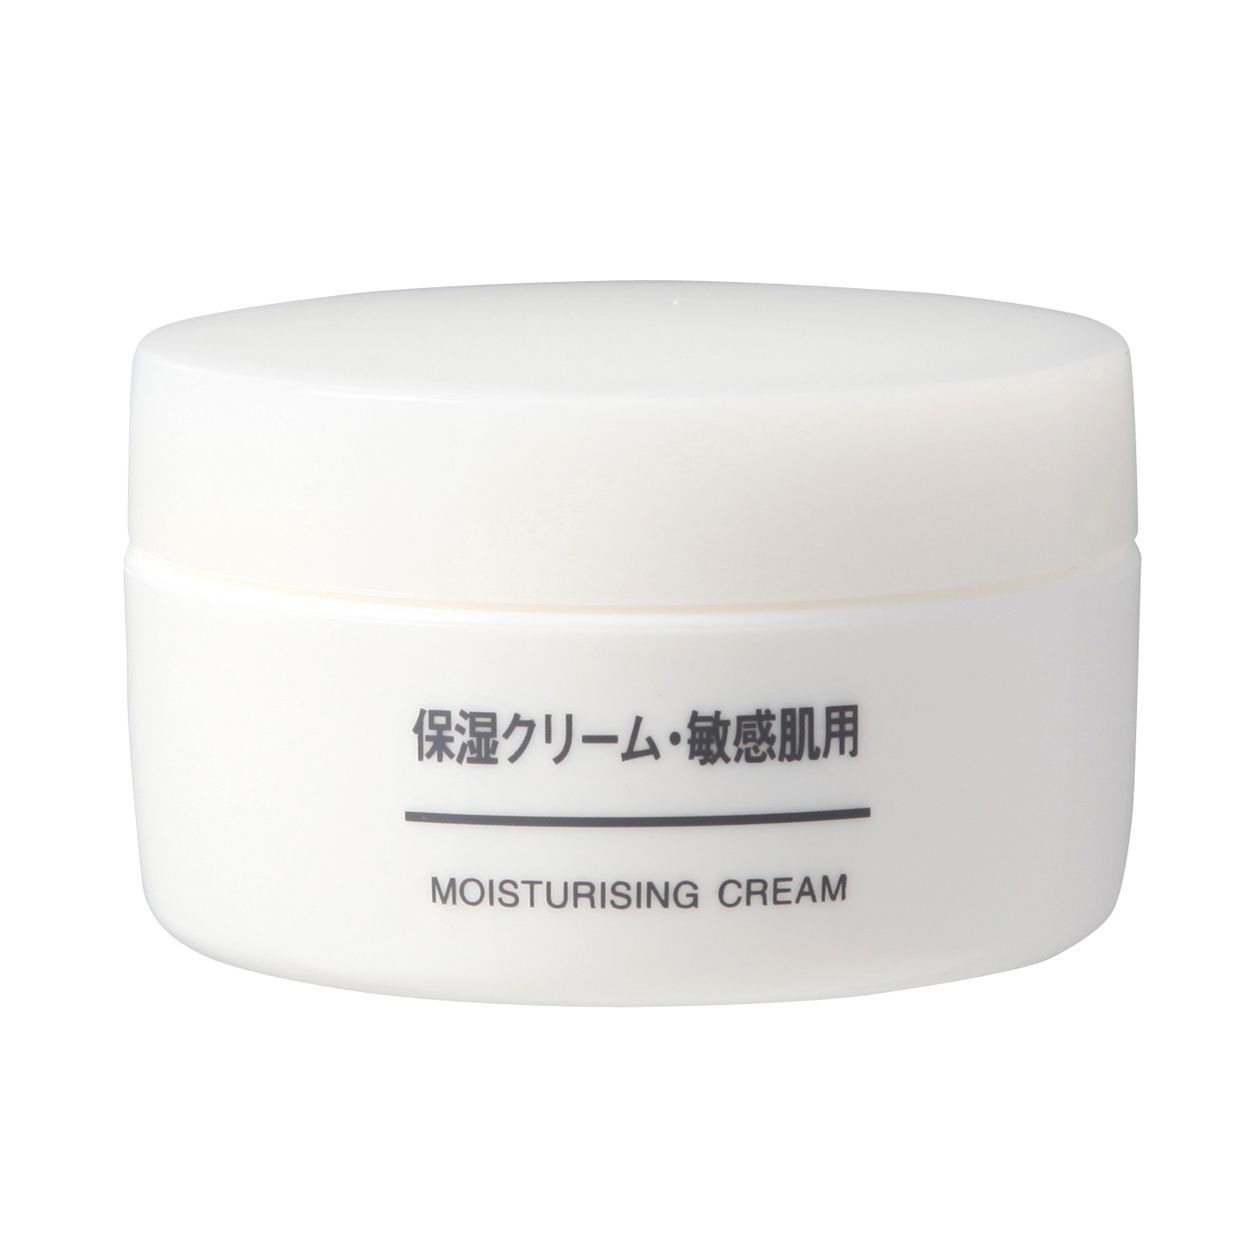 Image result for muji moisturiser